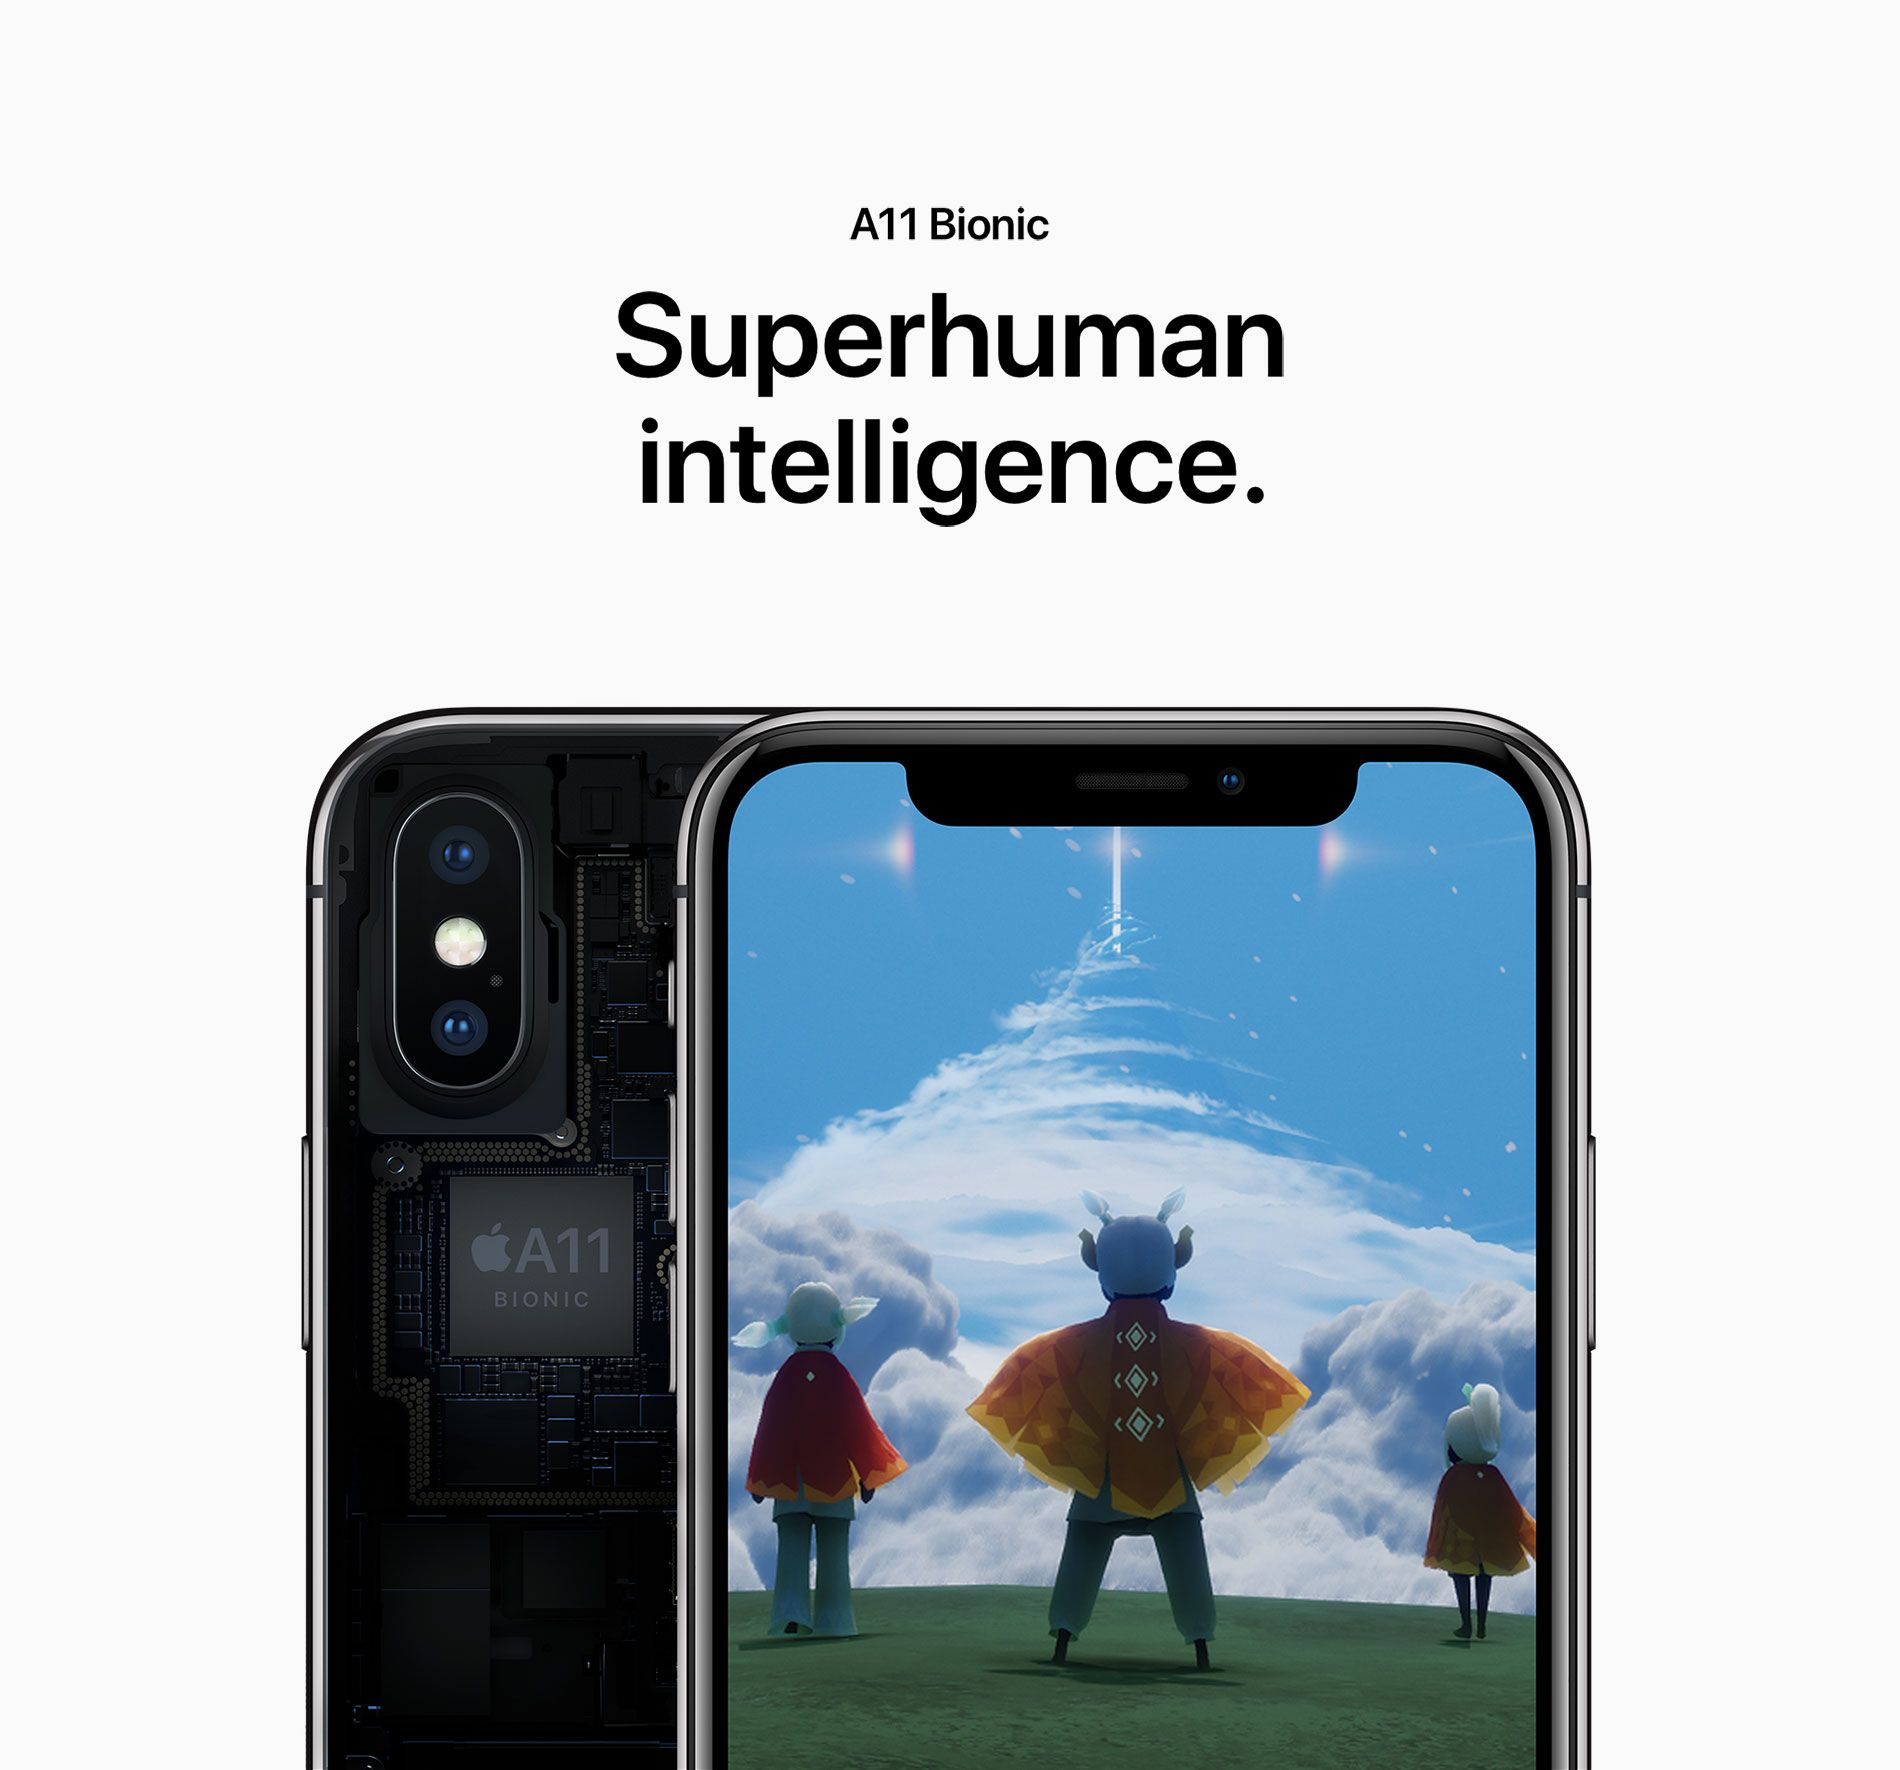 A11 Bionic - Superhuman intelligence.